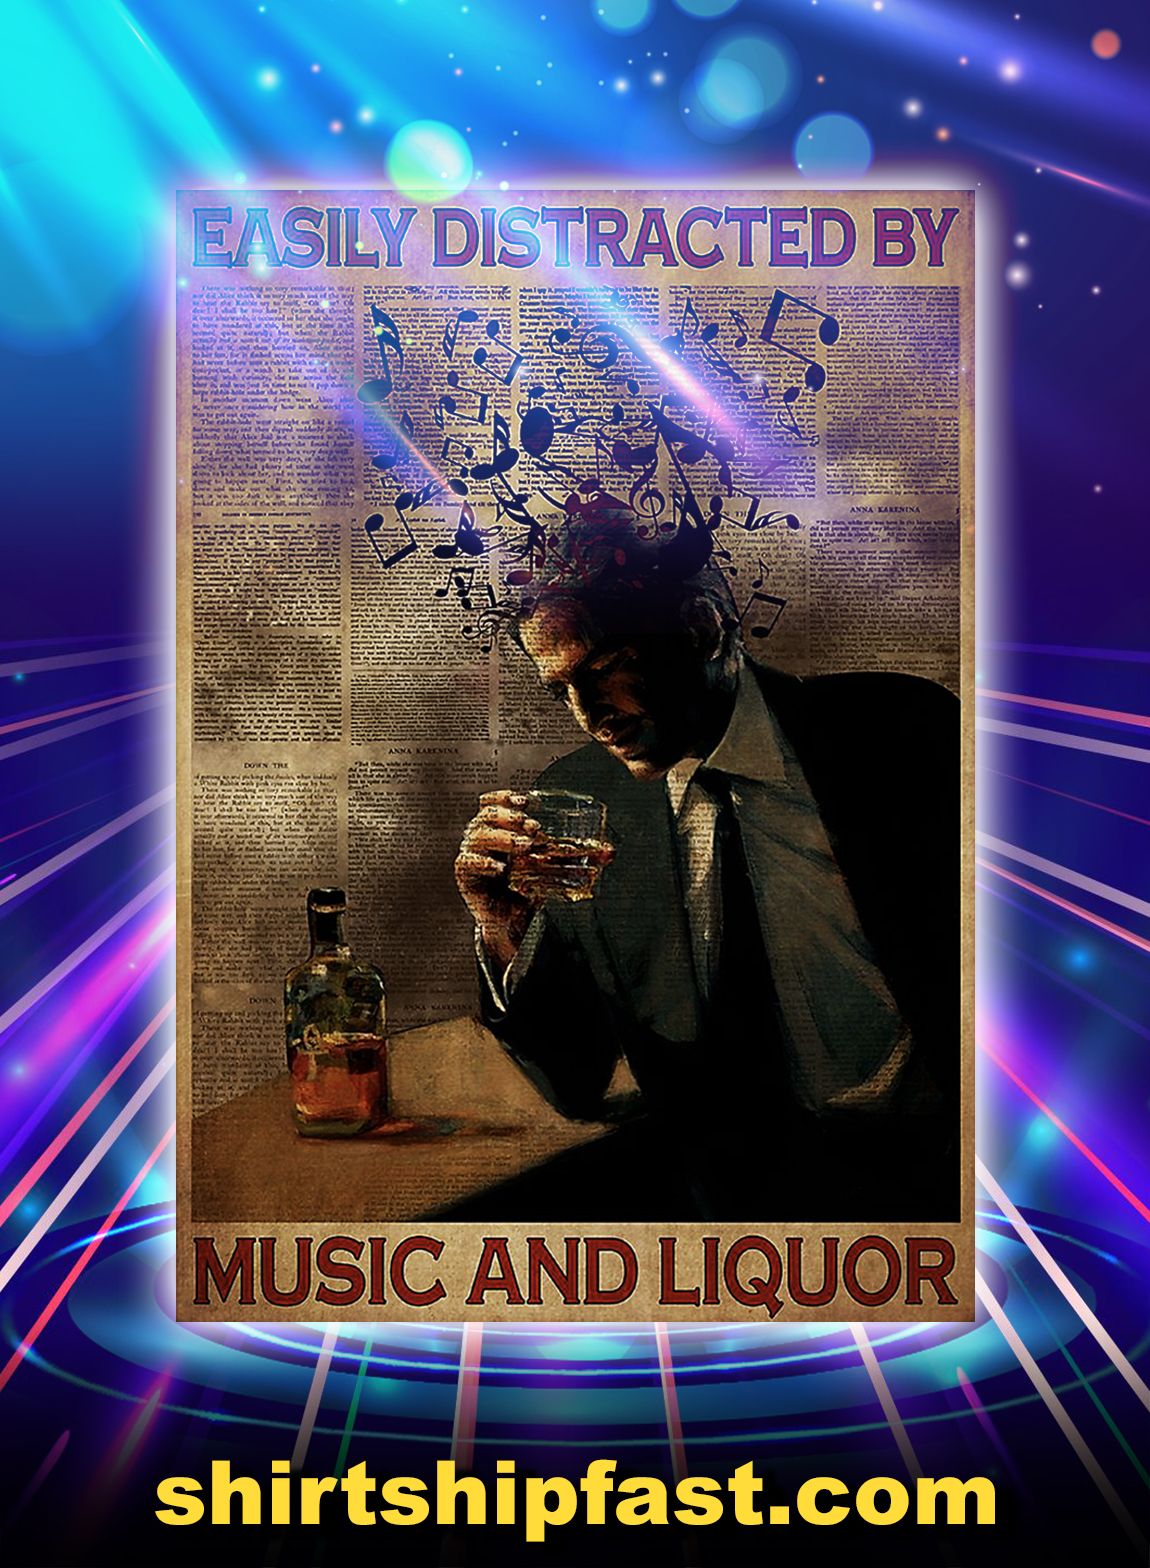 Man easily distracted by music and liquor poster - A3